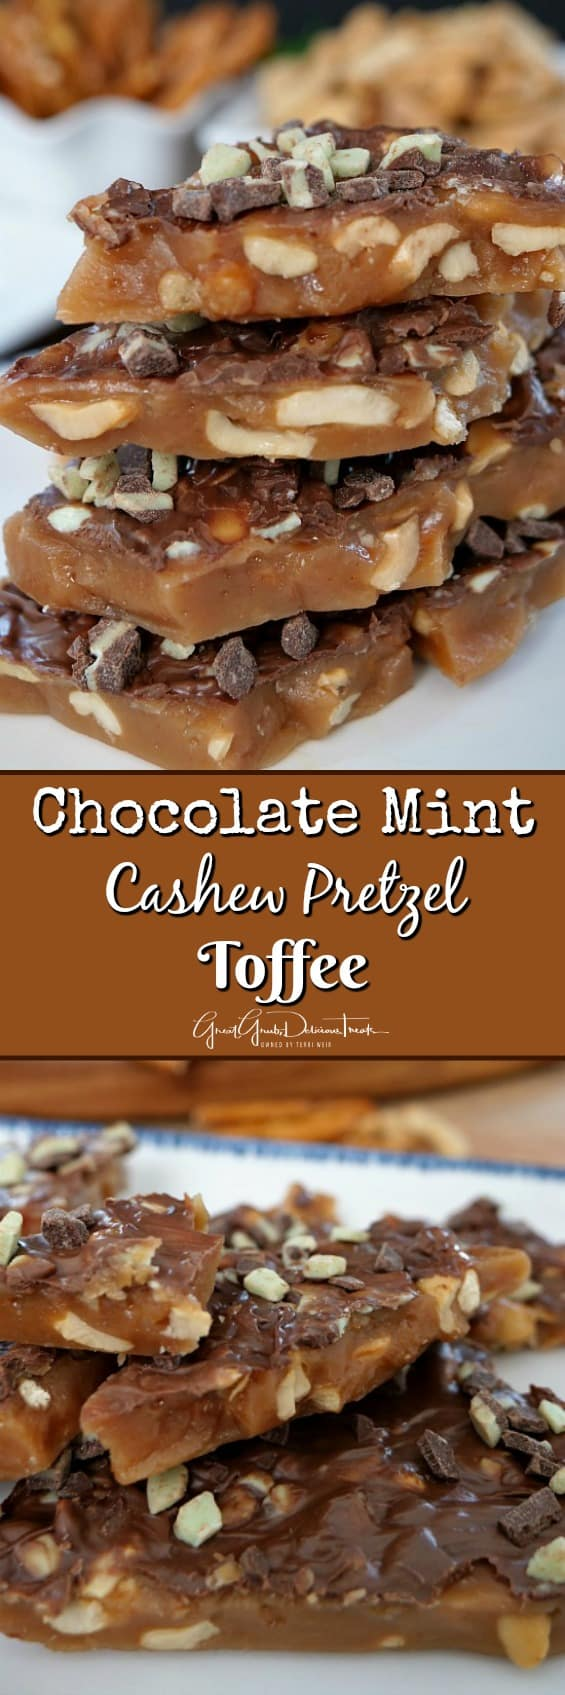 Chocolate Mint Cashew Pretzel Toffee